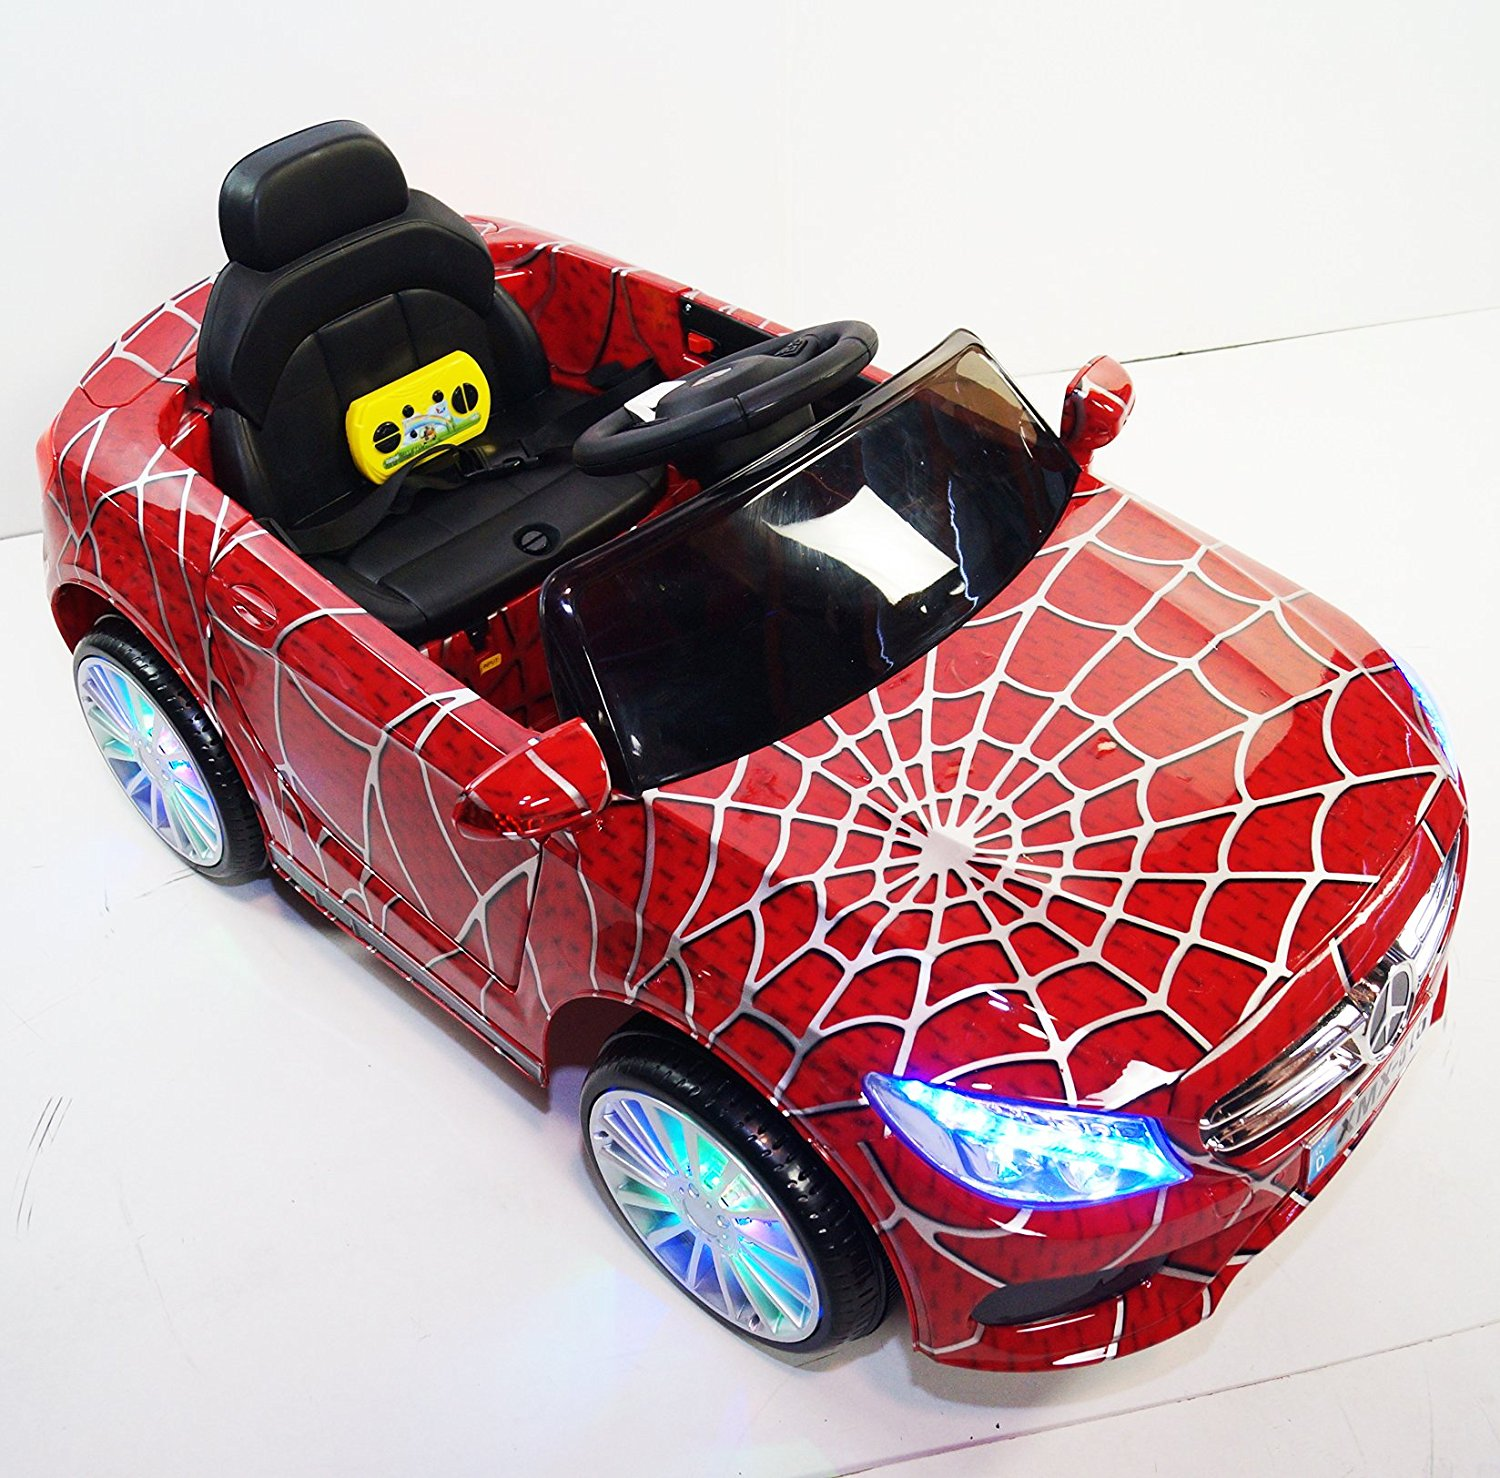 Electric cAr MERCEDES SPIDER style. Ride on car MP3. cars for childrens BOYS and GIRLS with remote control RC Battery Operated 12V. ride on toy car Сar for kids ride 2 to 7 years pedal car